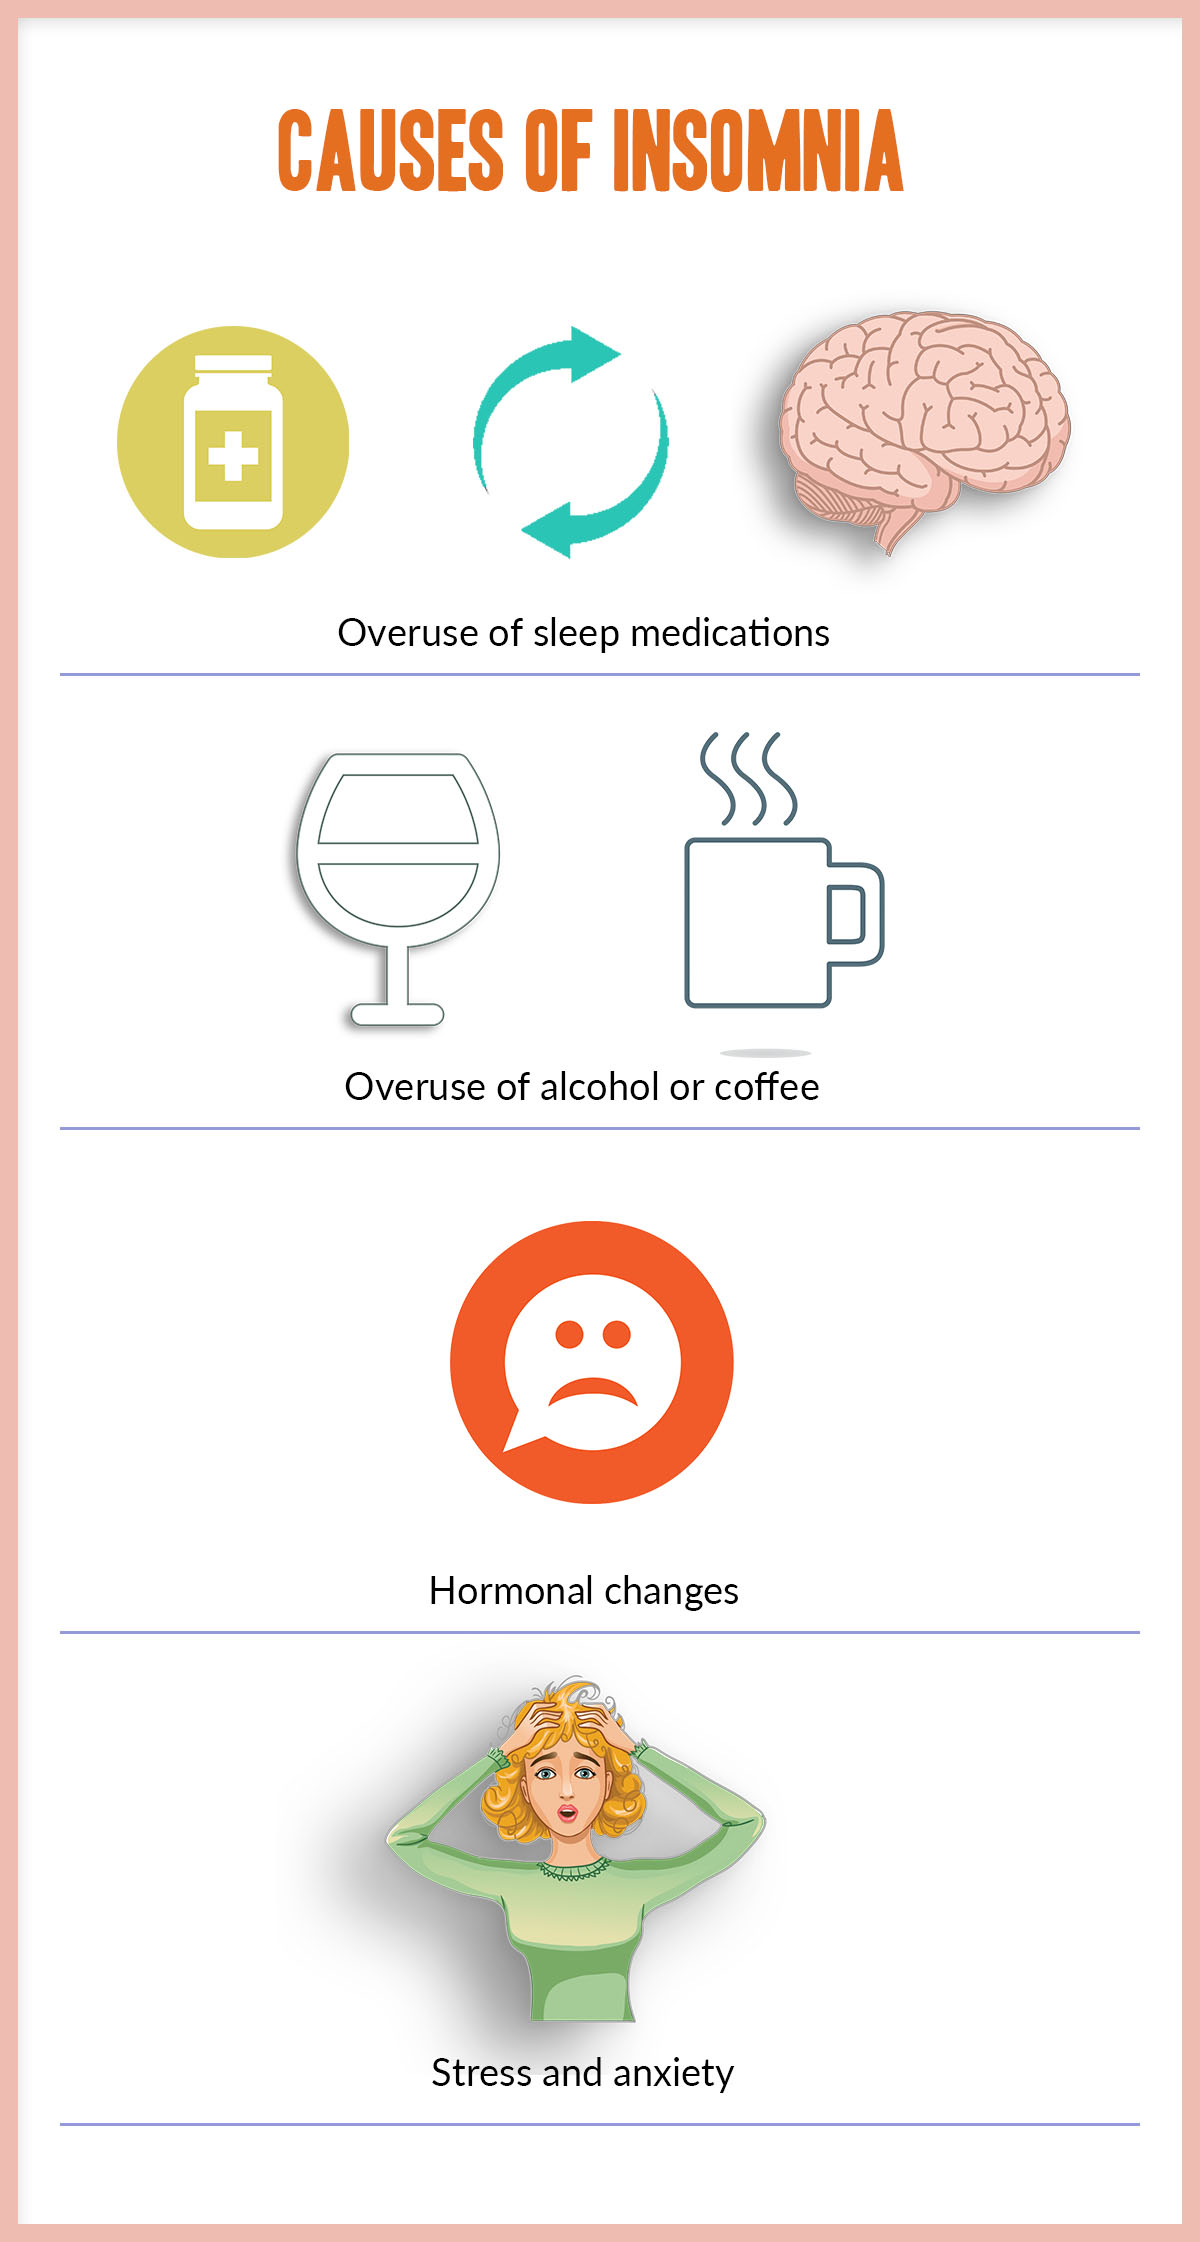 Things that cause insomnia